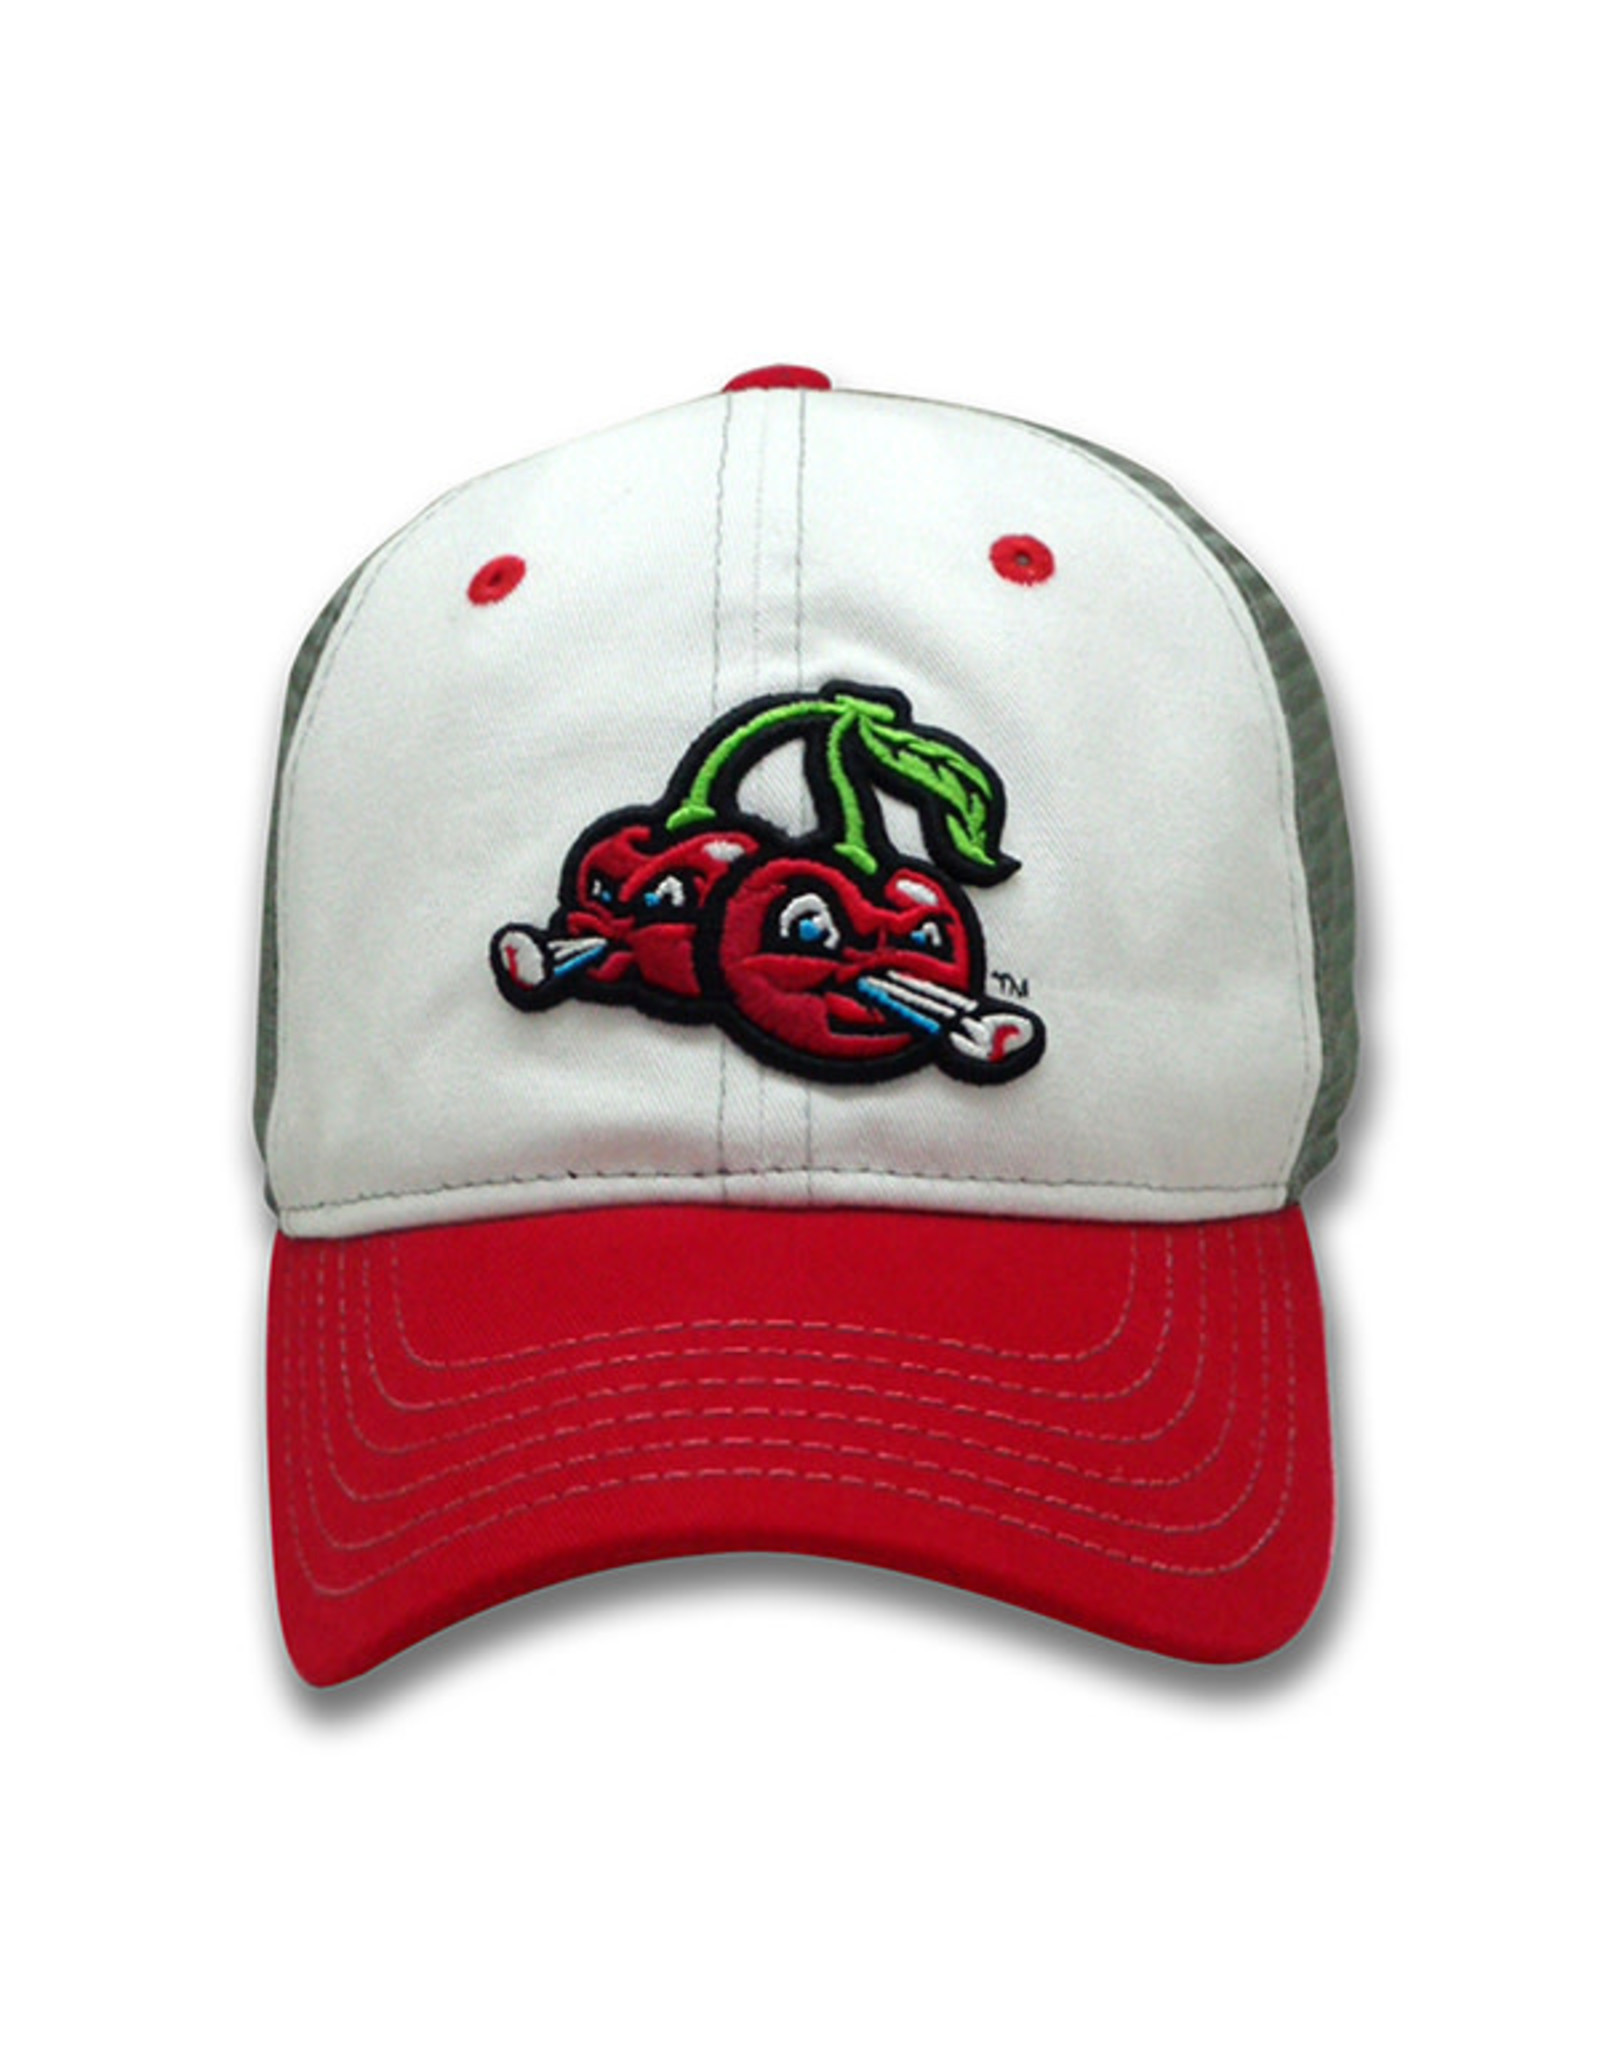 The Game 1620 Youth Trucker White/Grey/Red Cherries Mesh Cap